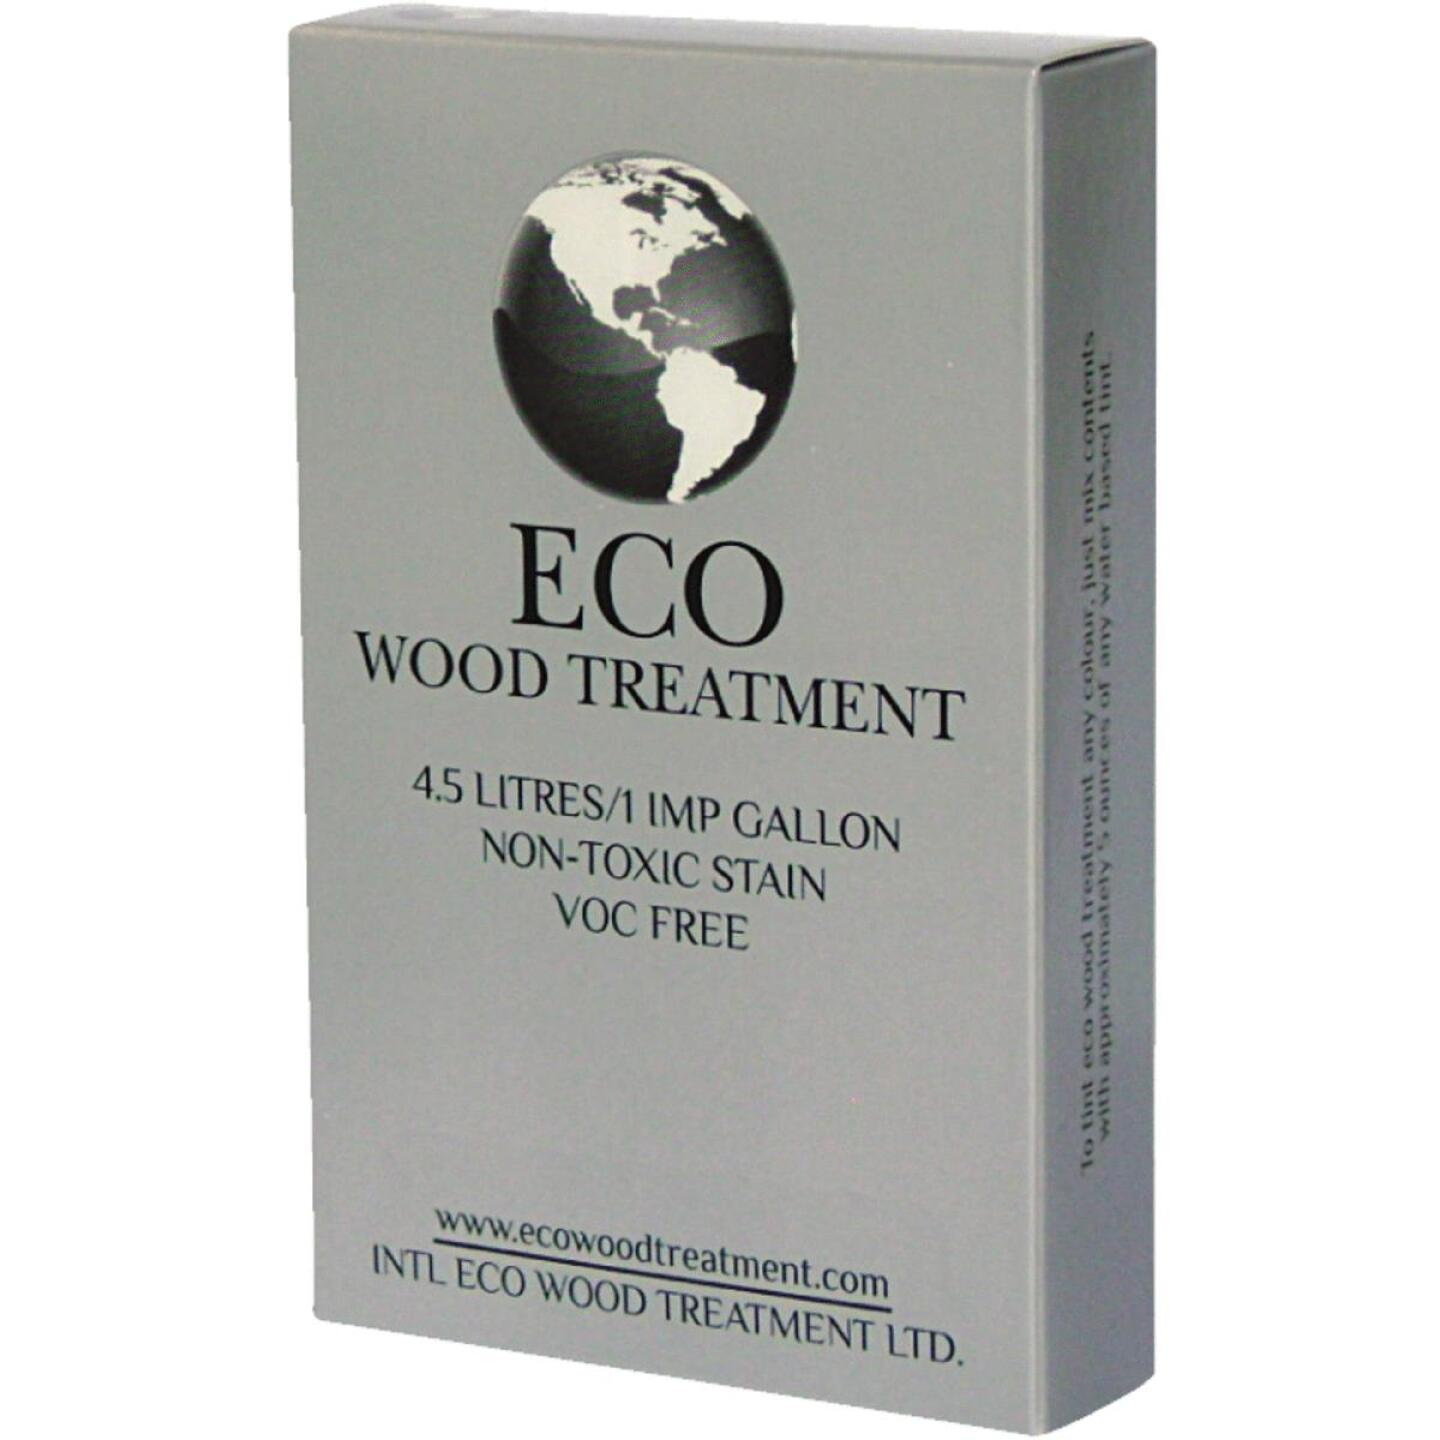 Eco Wood Treatment Exterior Wood Stain & Preservative, 1 Gal. Image 1